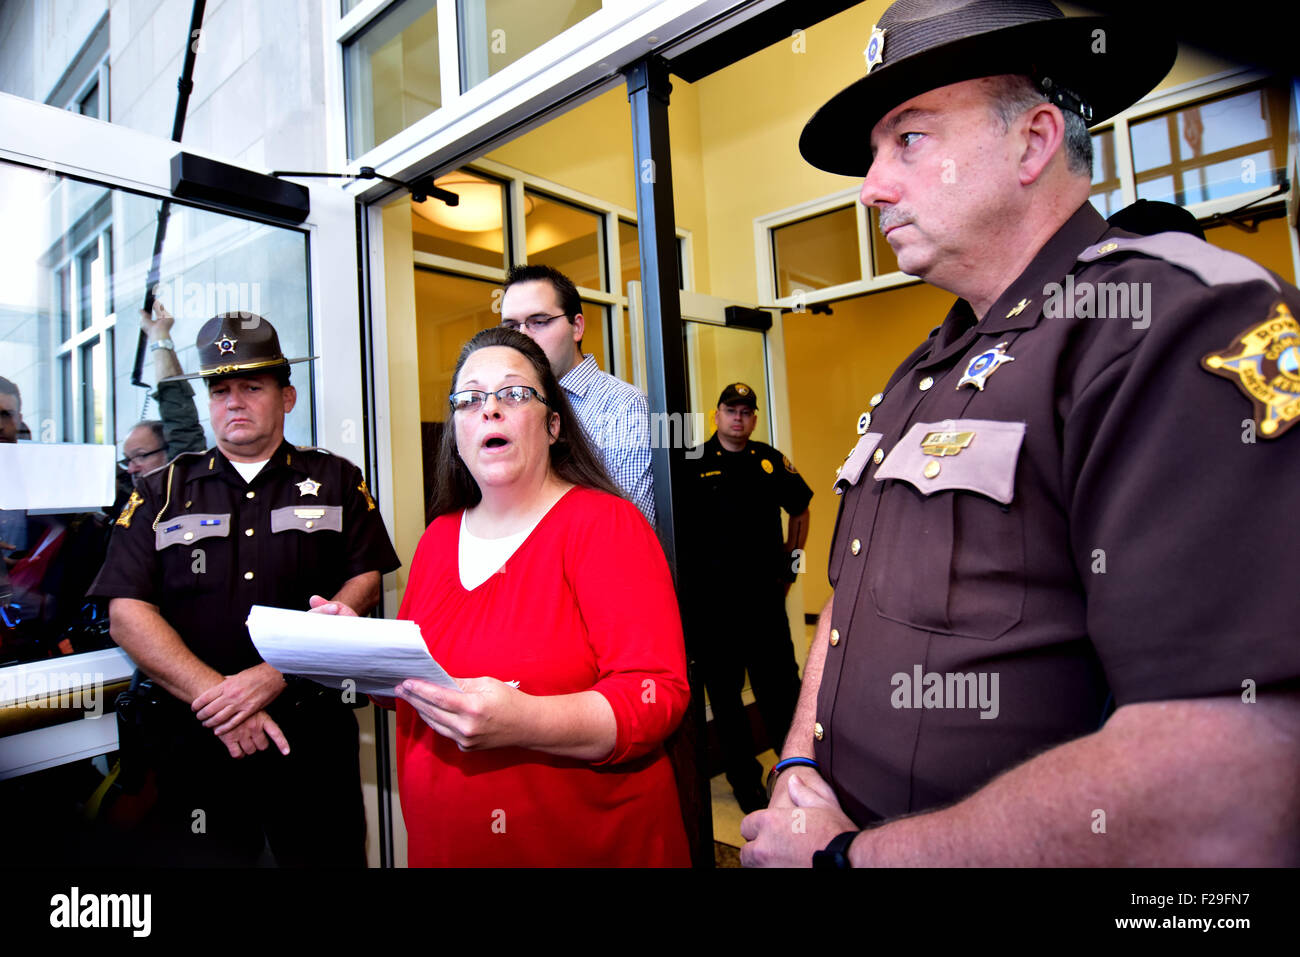 Morehead, Kentucky, USA. 14th September, 2015. Both supporters and opponents of Kim Davis gather outside of the - Stock Image